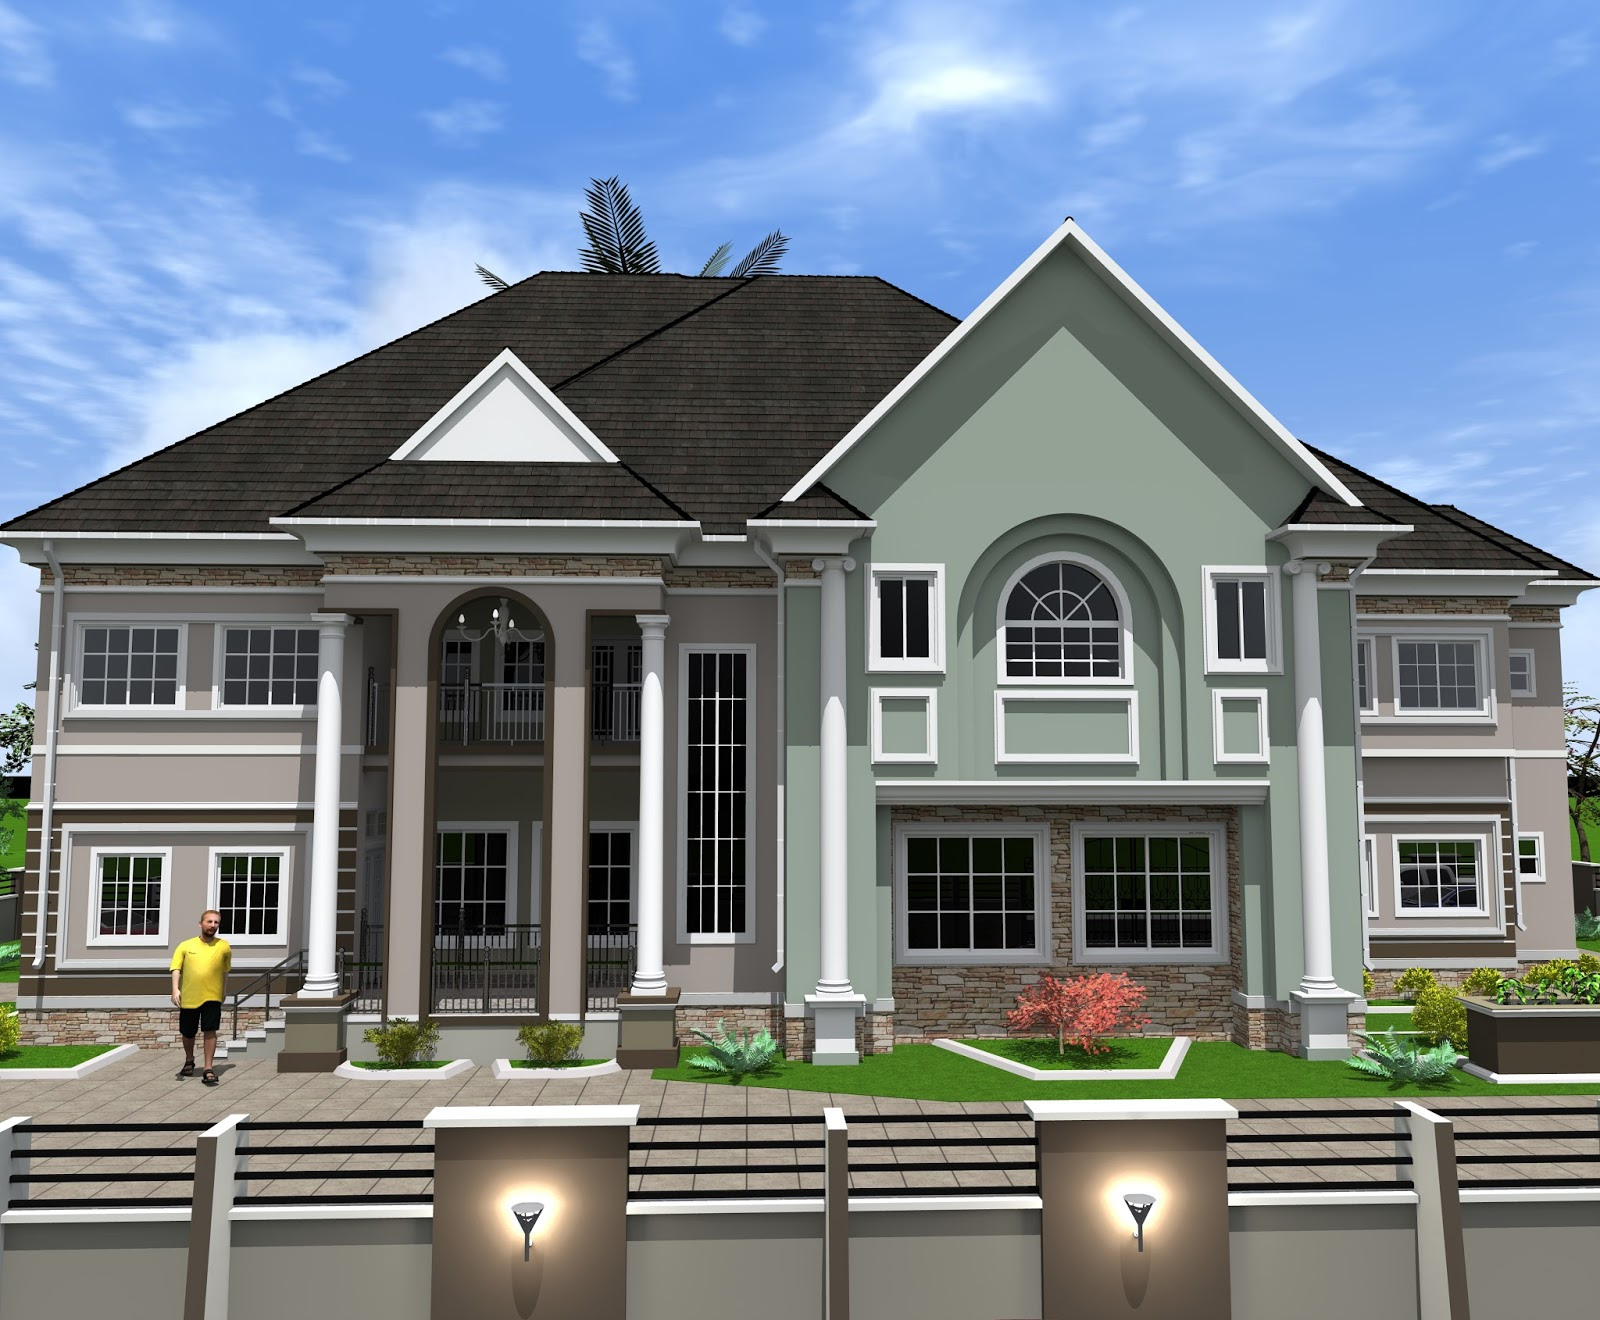 Dream homes 6 bedroom duplex for 4 bedroom dream house